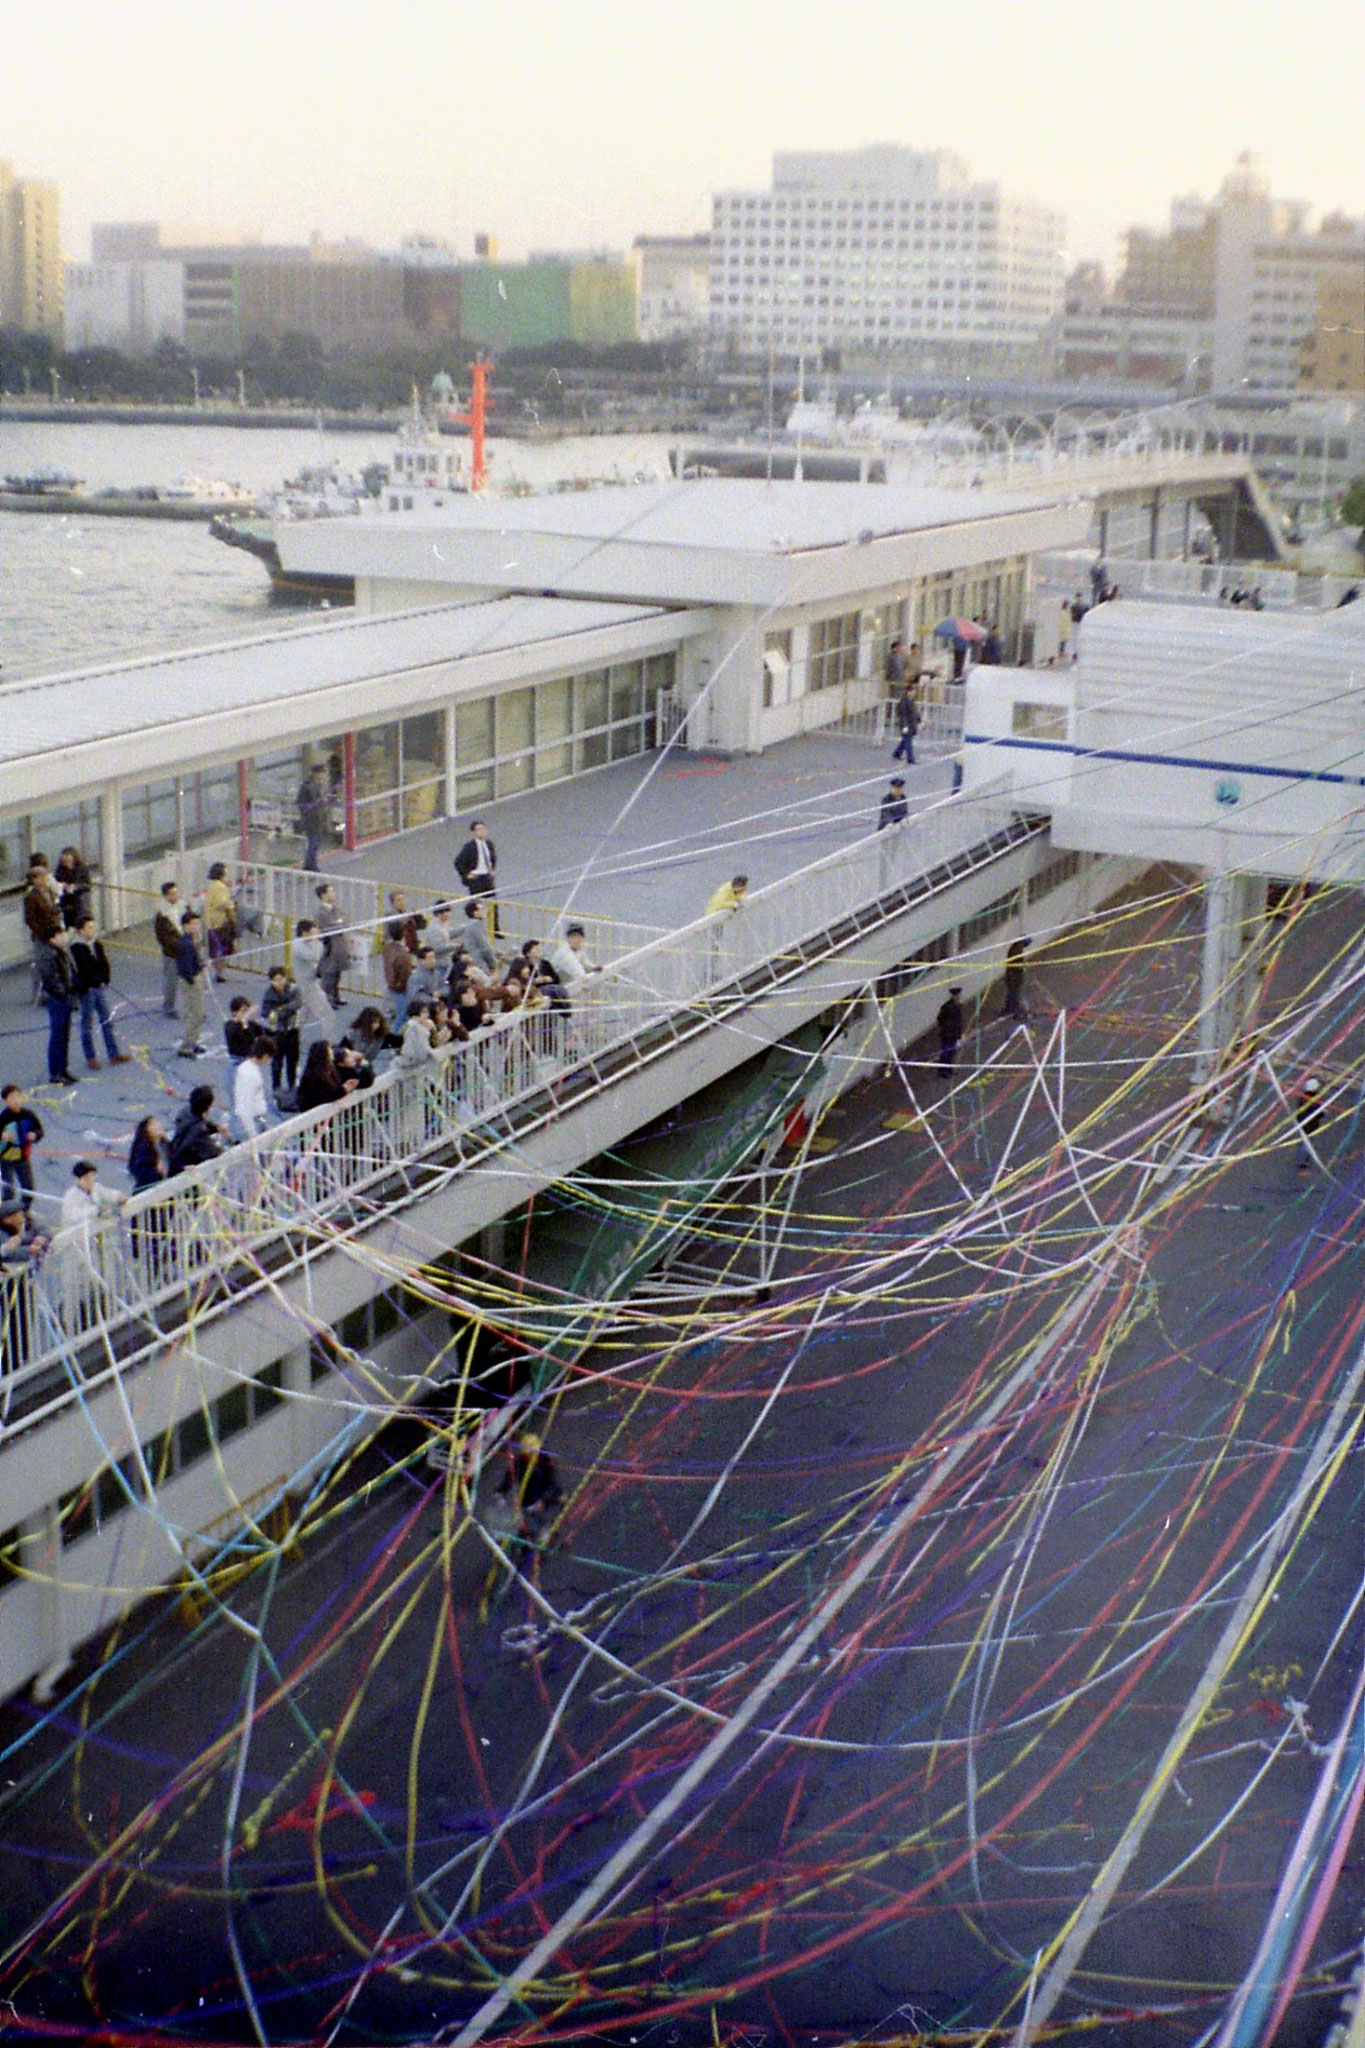 6/2/1989: 8: Yokohama quayside at New Year